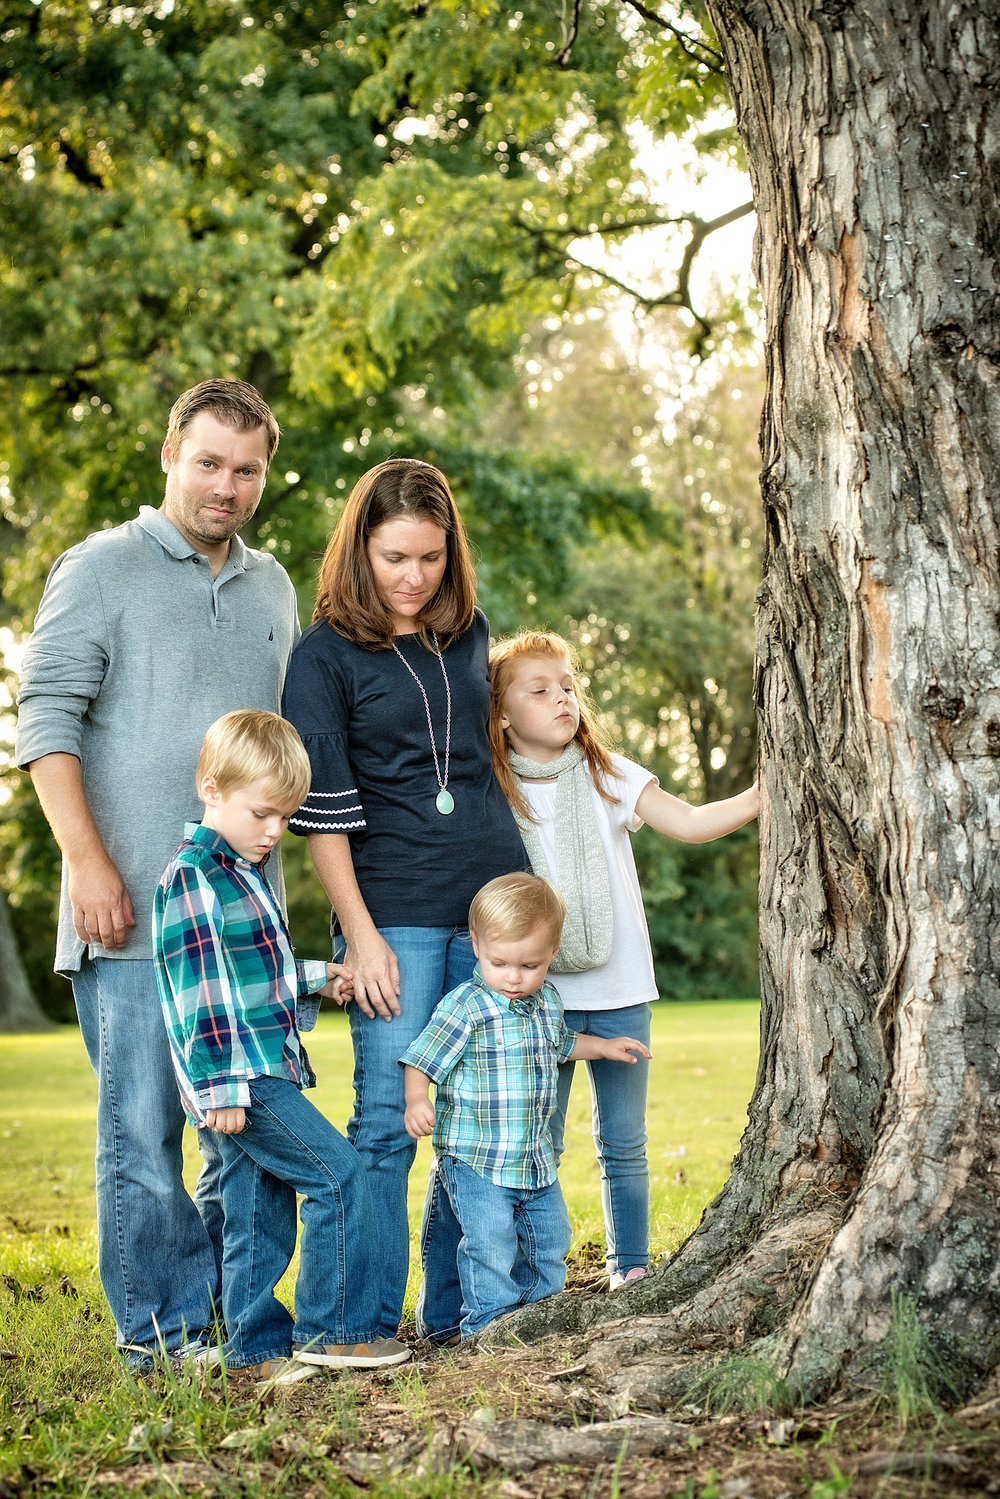 The family was able to gather for a quick snap by the tree before the little cherub sprinted off.